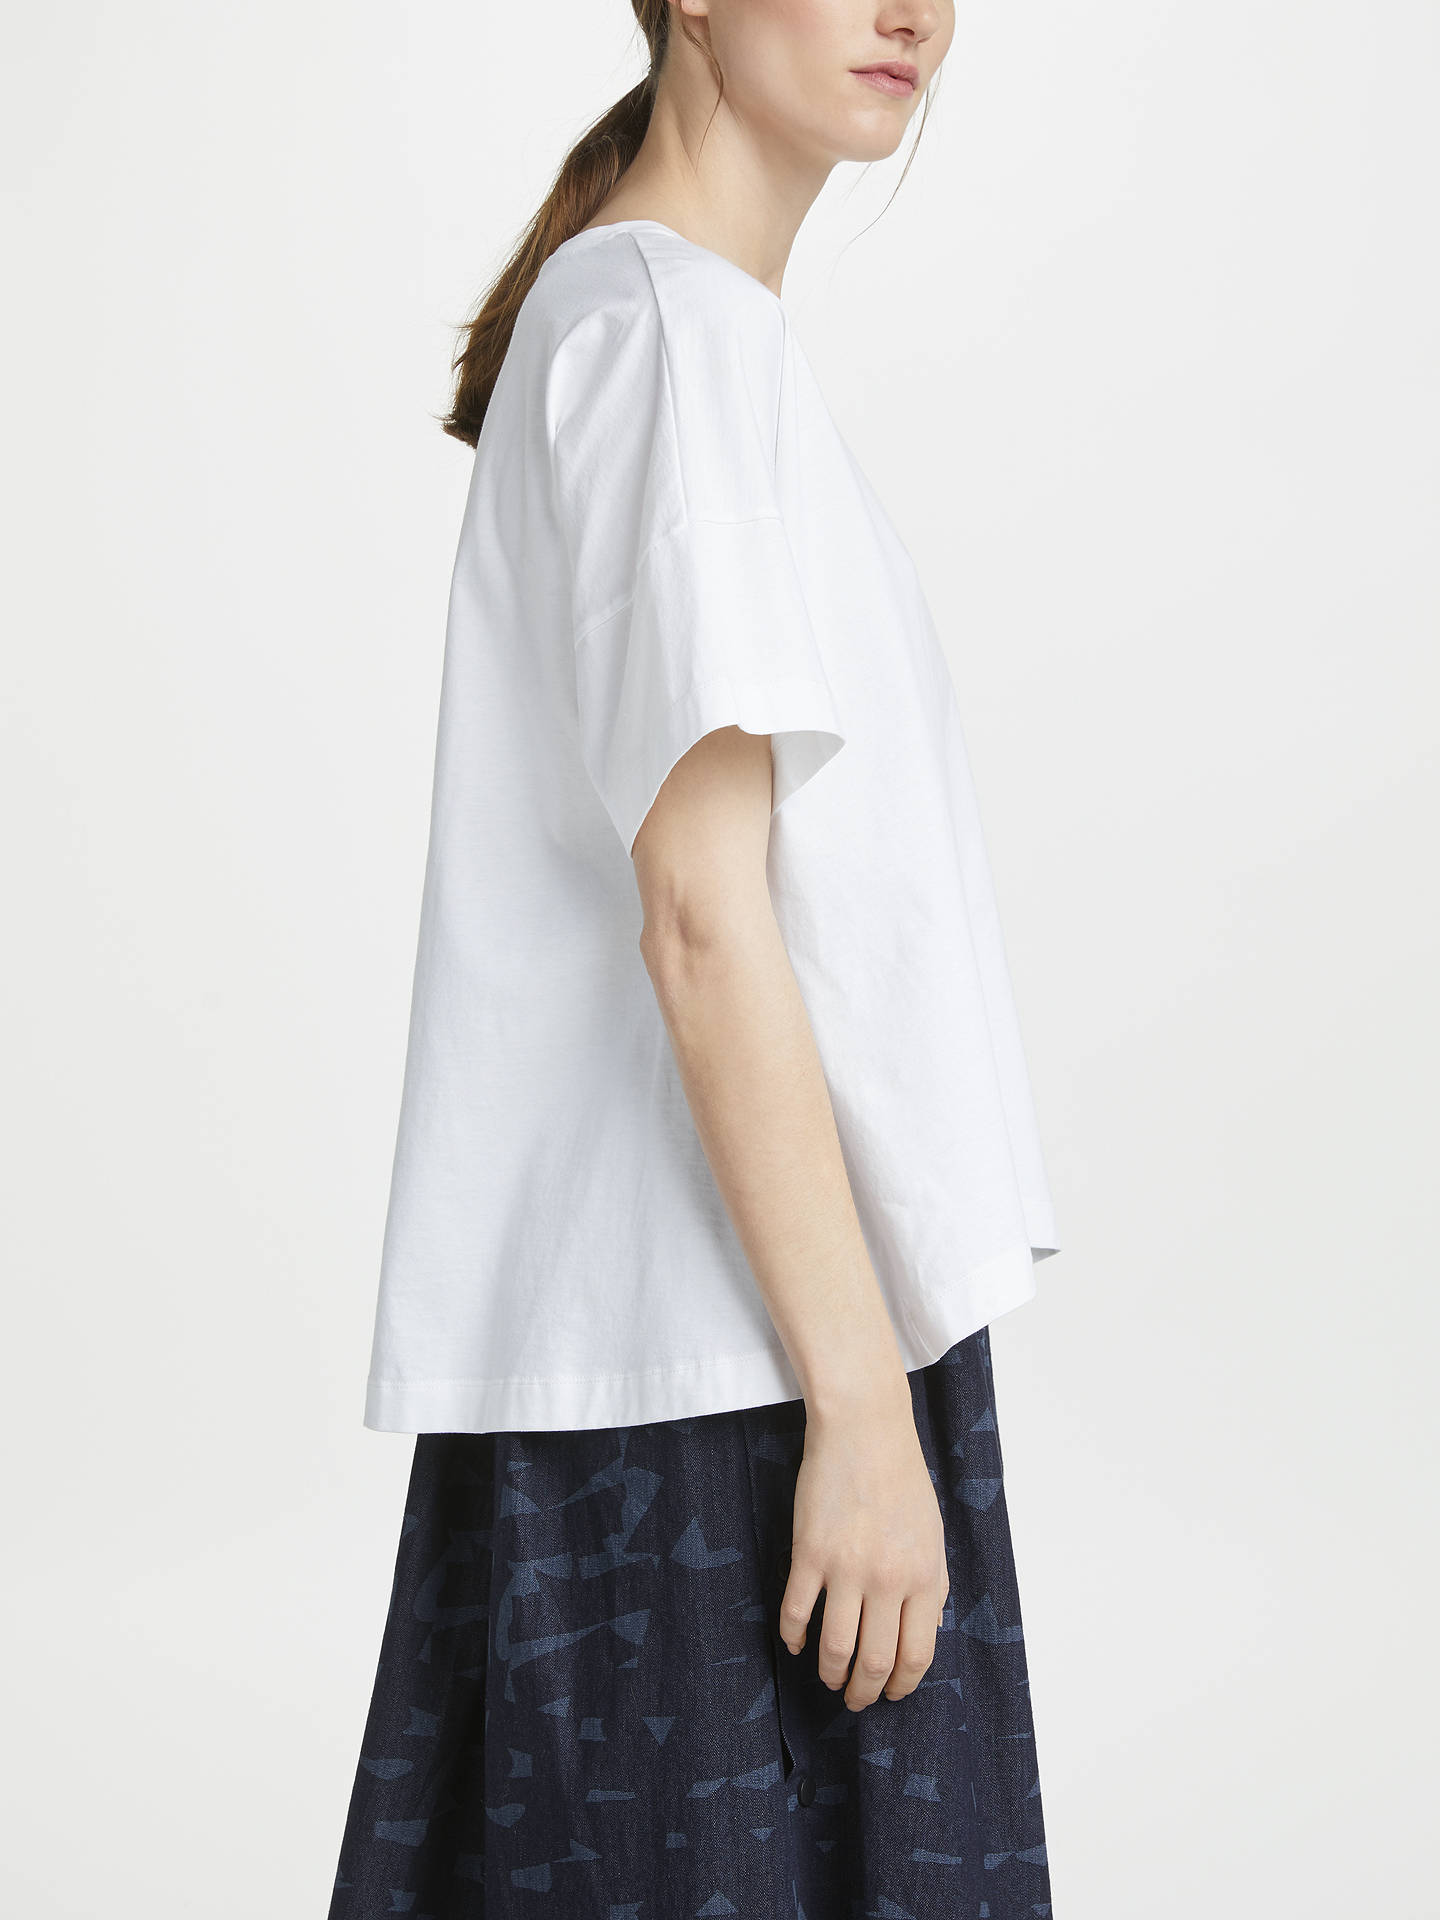 BuyKin Fluted Back T-Shirt, White, S Online at johnlewis.com